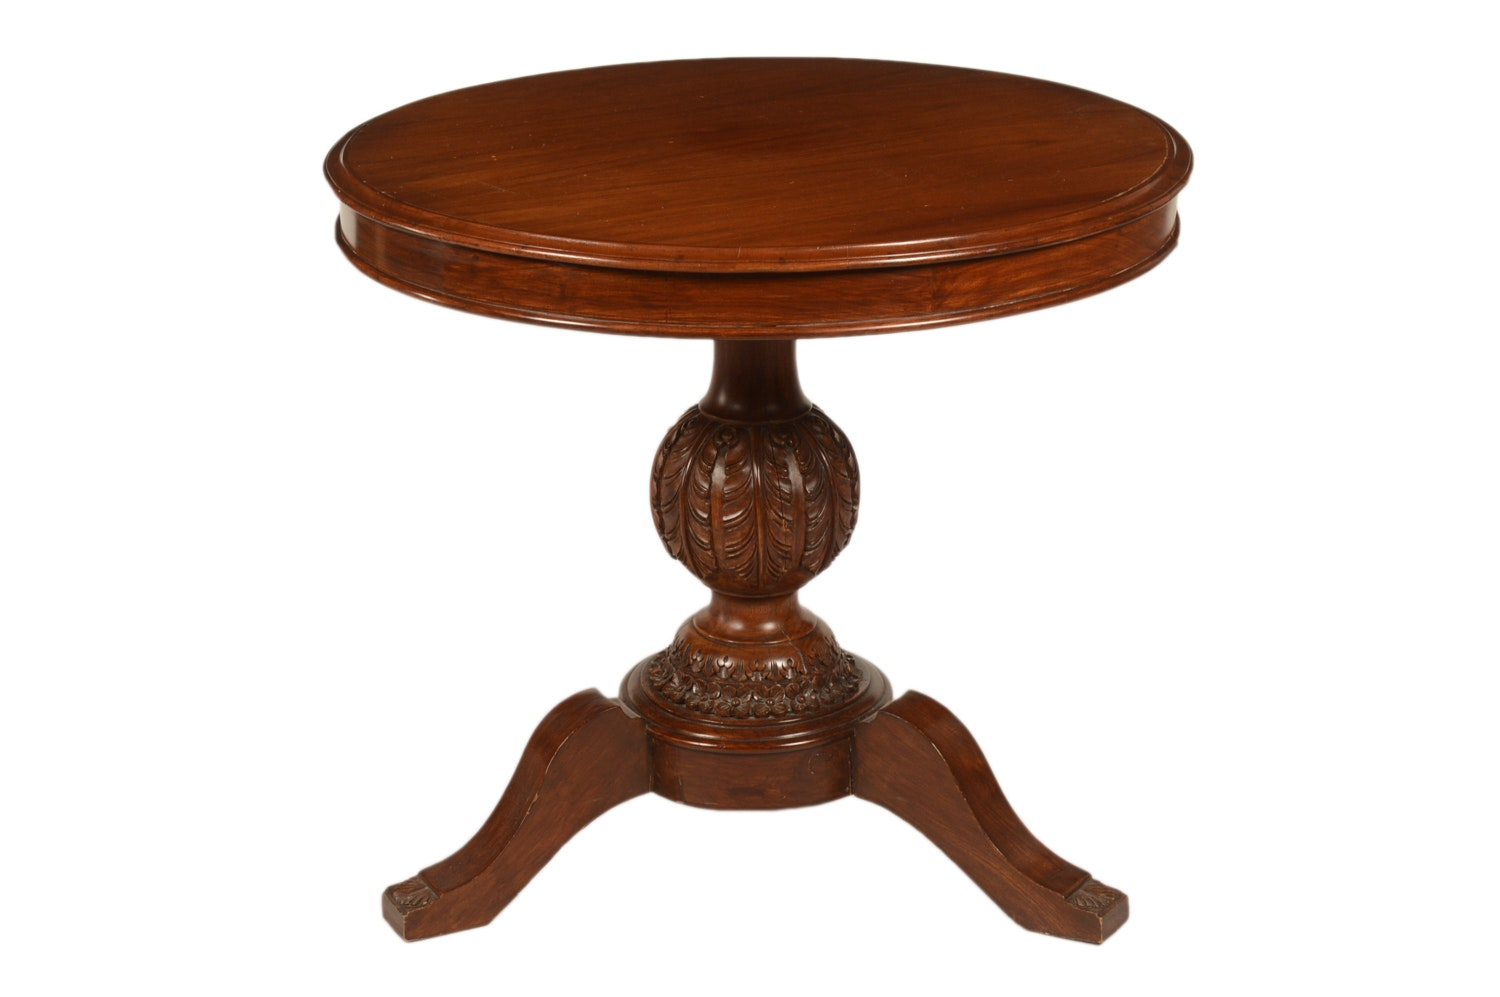 Federal Style Mahogany Pedestal Foyer Table, 20th Century